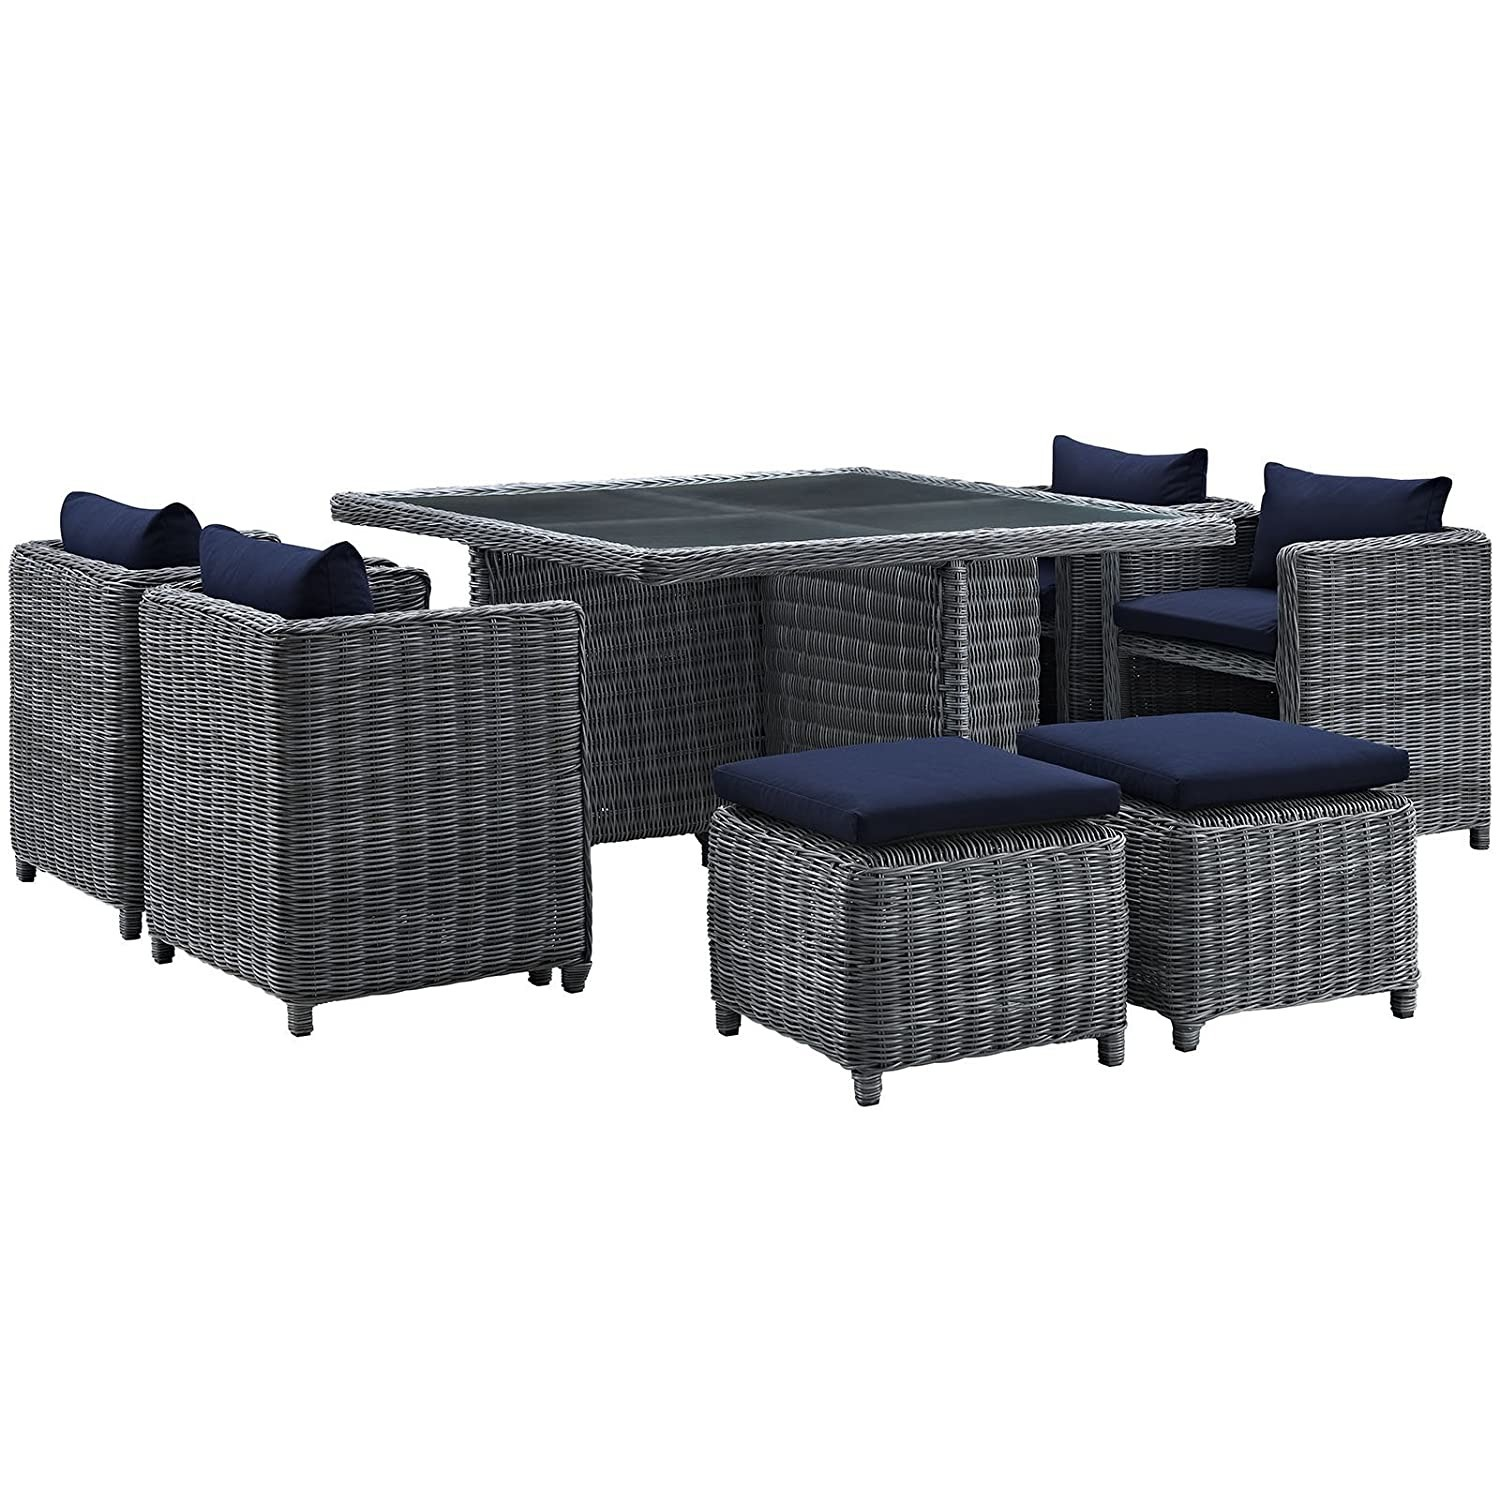 Modern 9-Piece Dining Set In Gray Navy Finish - image-0